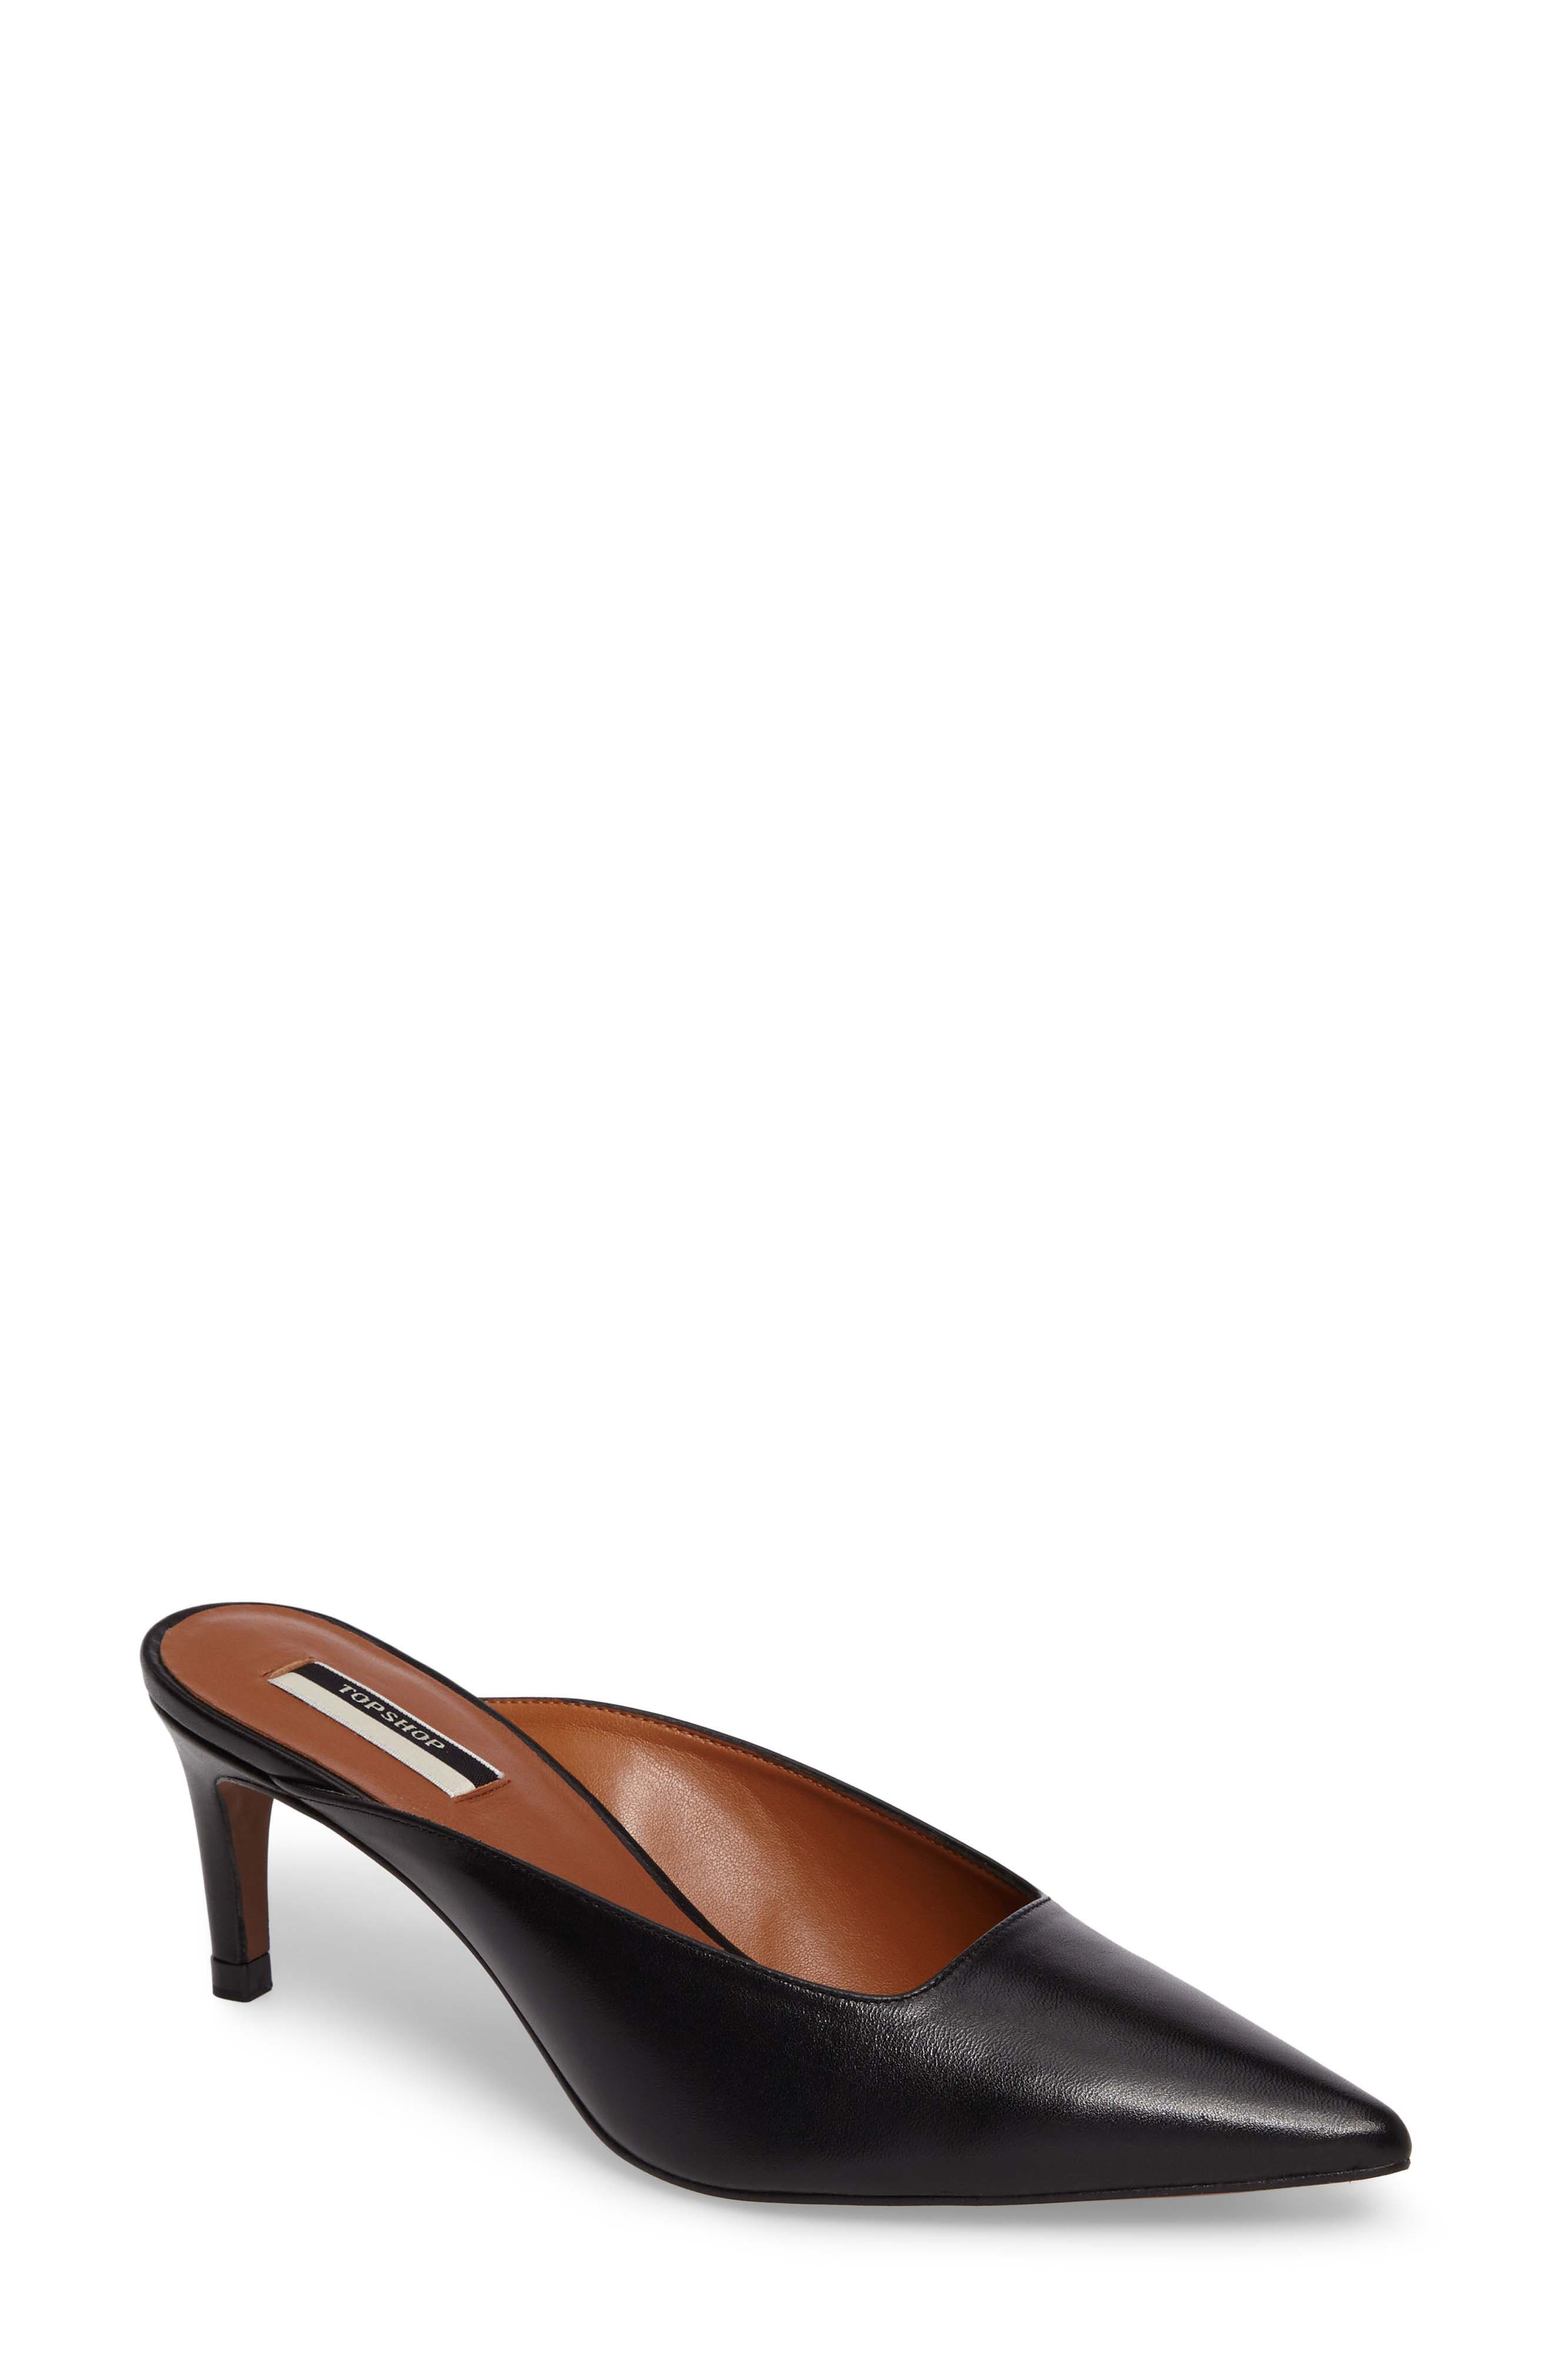 Joanne Pointy Toe Mule,                             Main thumbnail 1, color,                             001